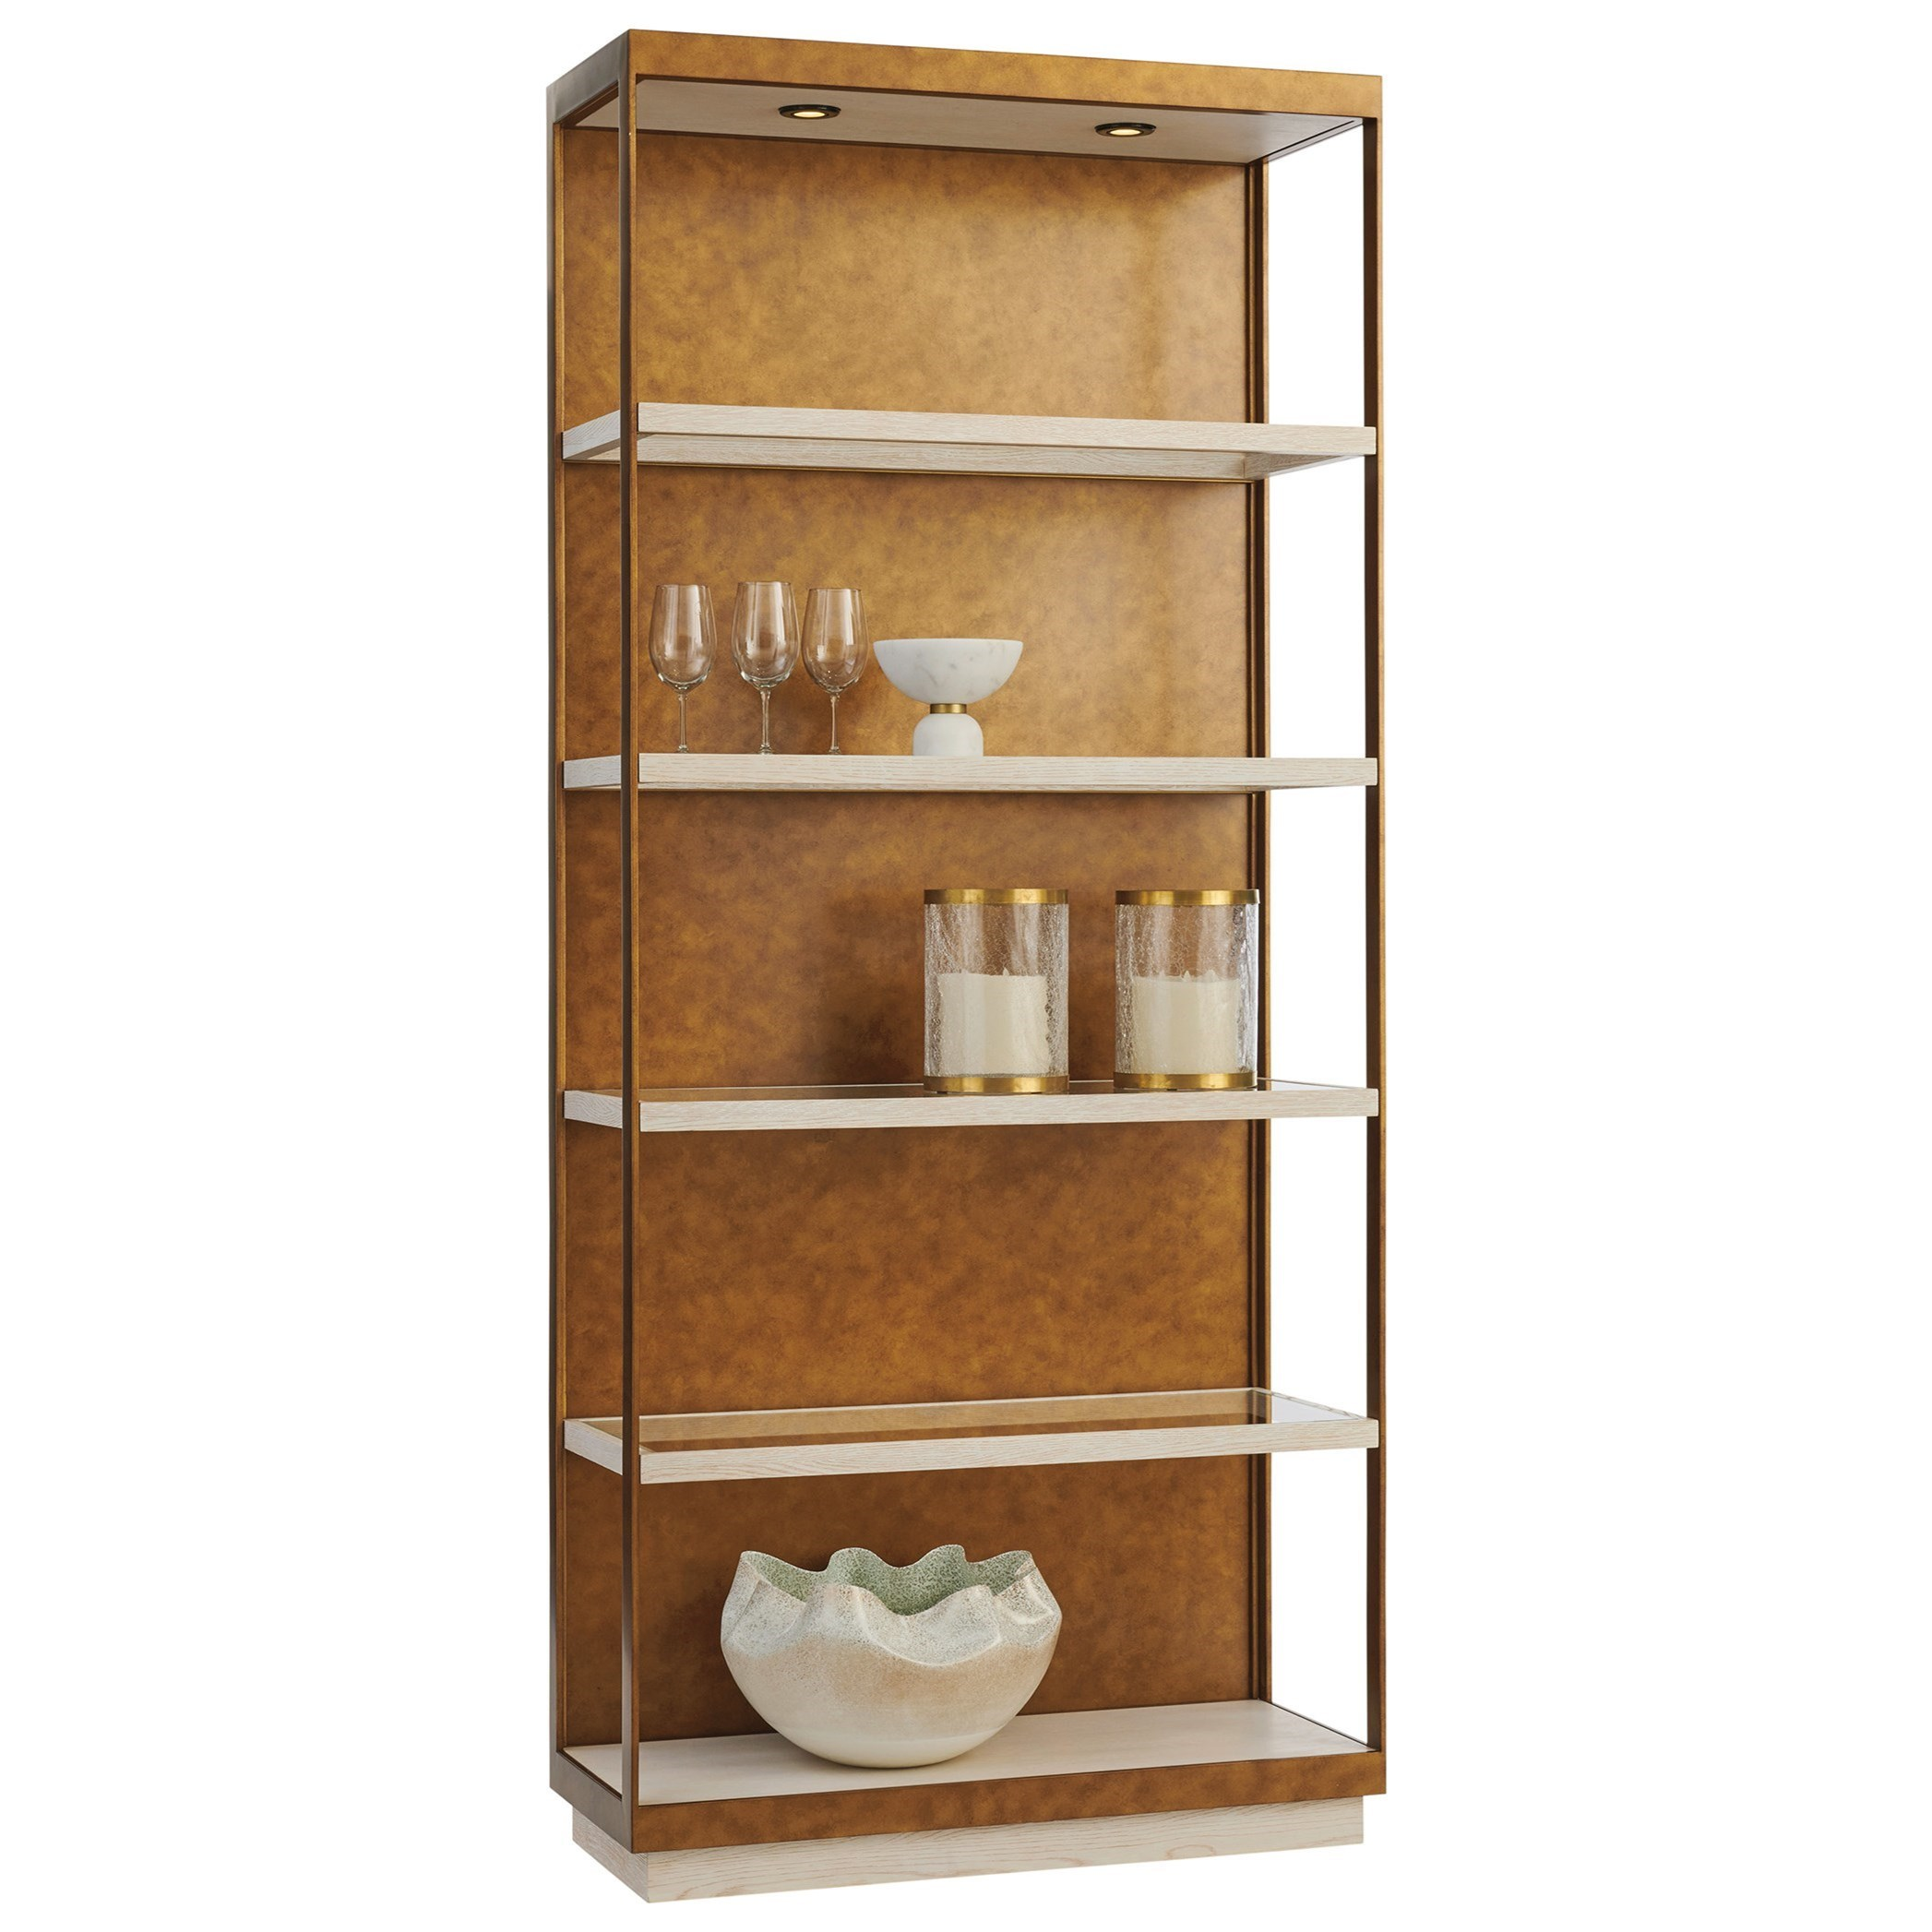 Carmel Whitman Etagere by Barclay Butera at Baer's Furniture